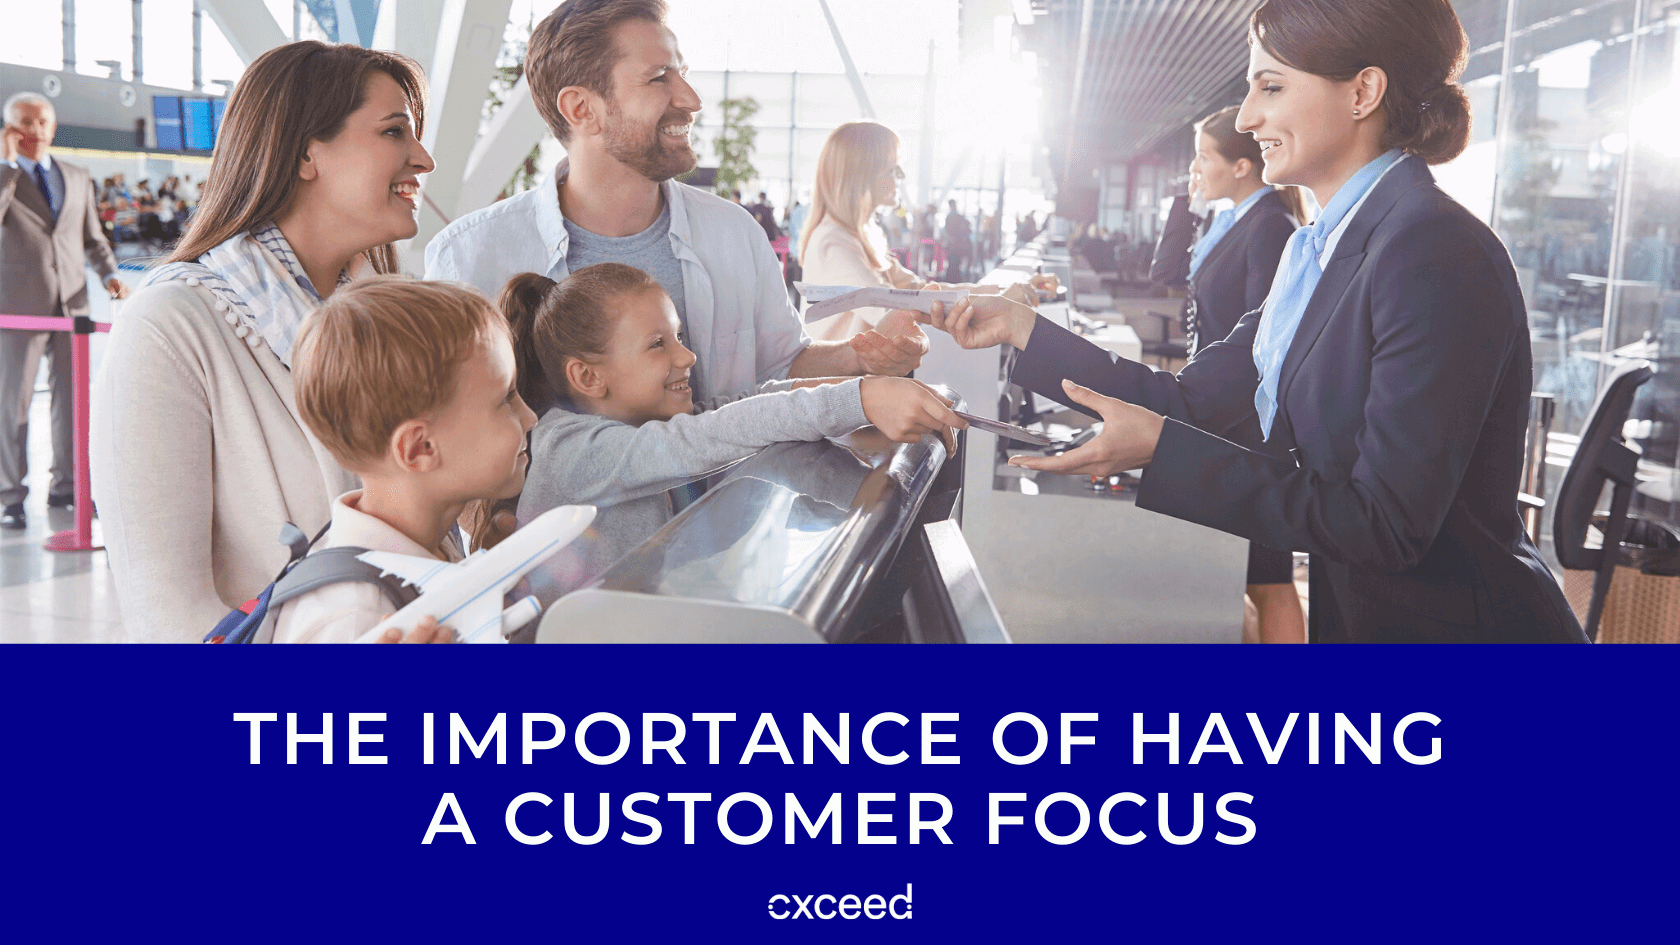 The Importance of Having a Customer Focus